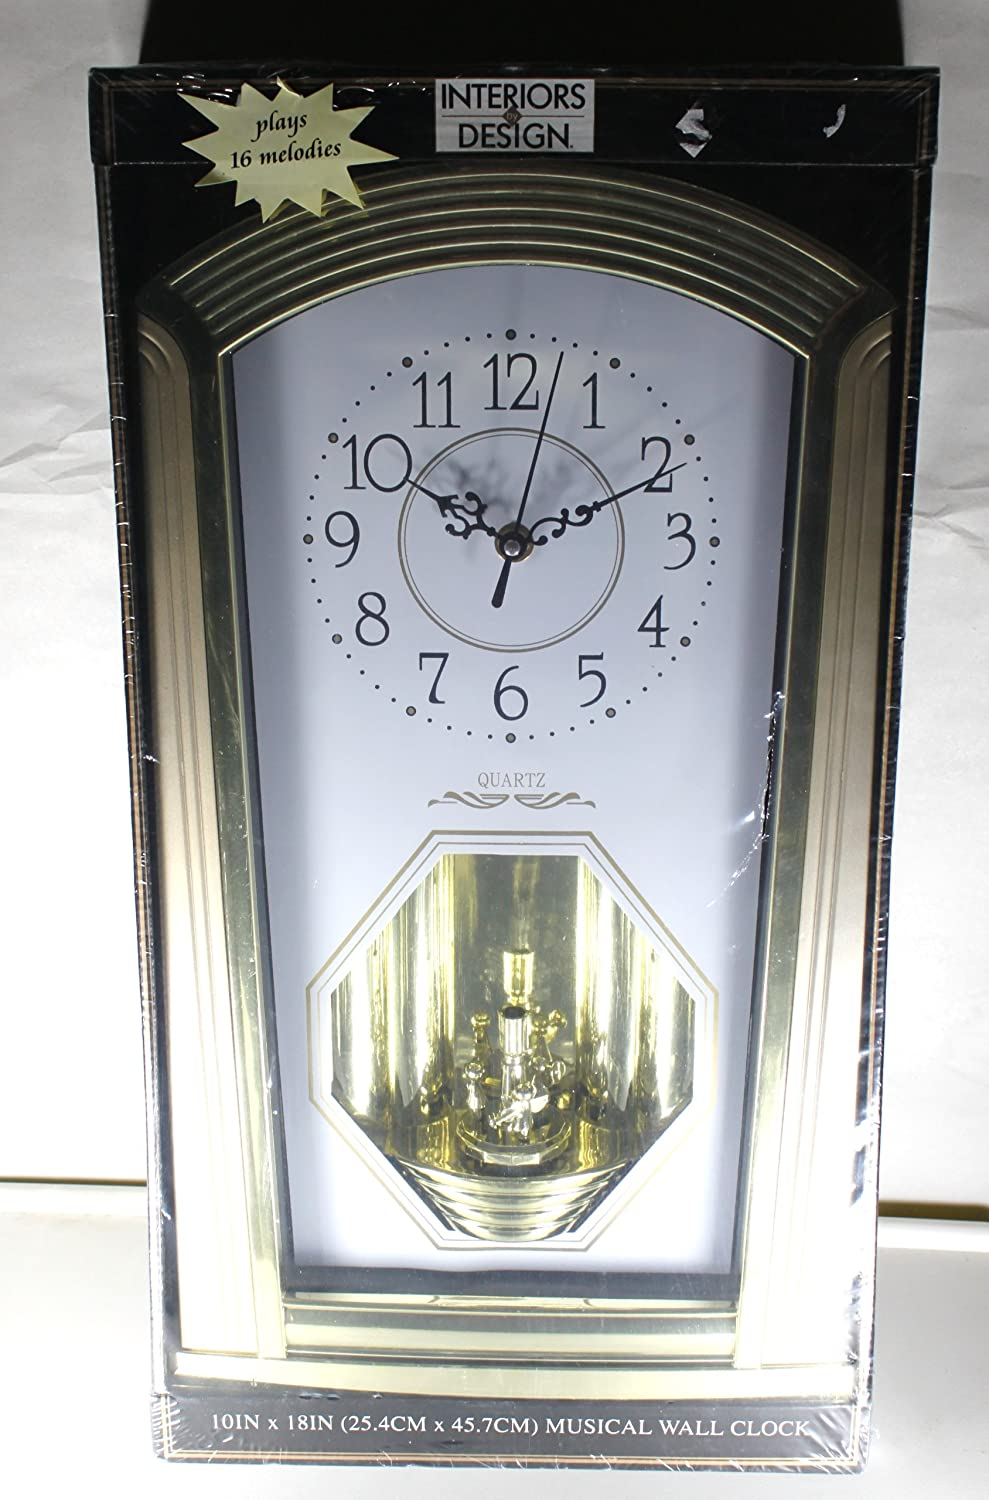 Interiors by Design Quartz Musical Wall Clock Hourly Chime